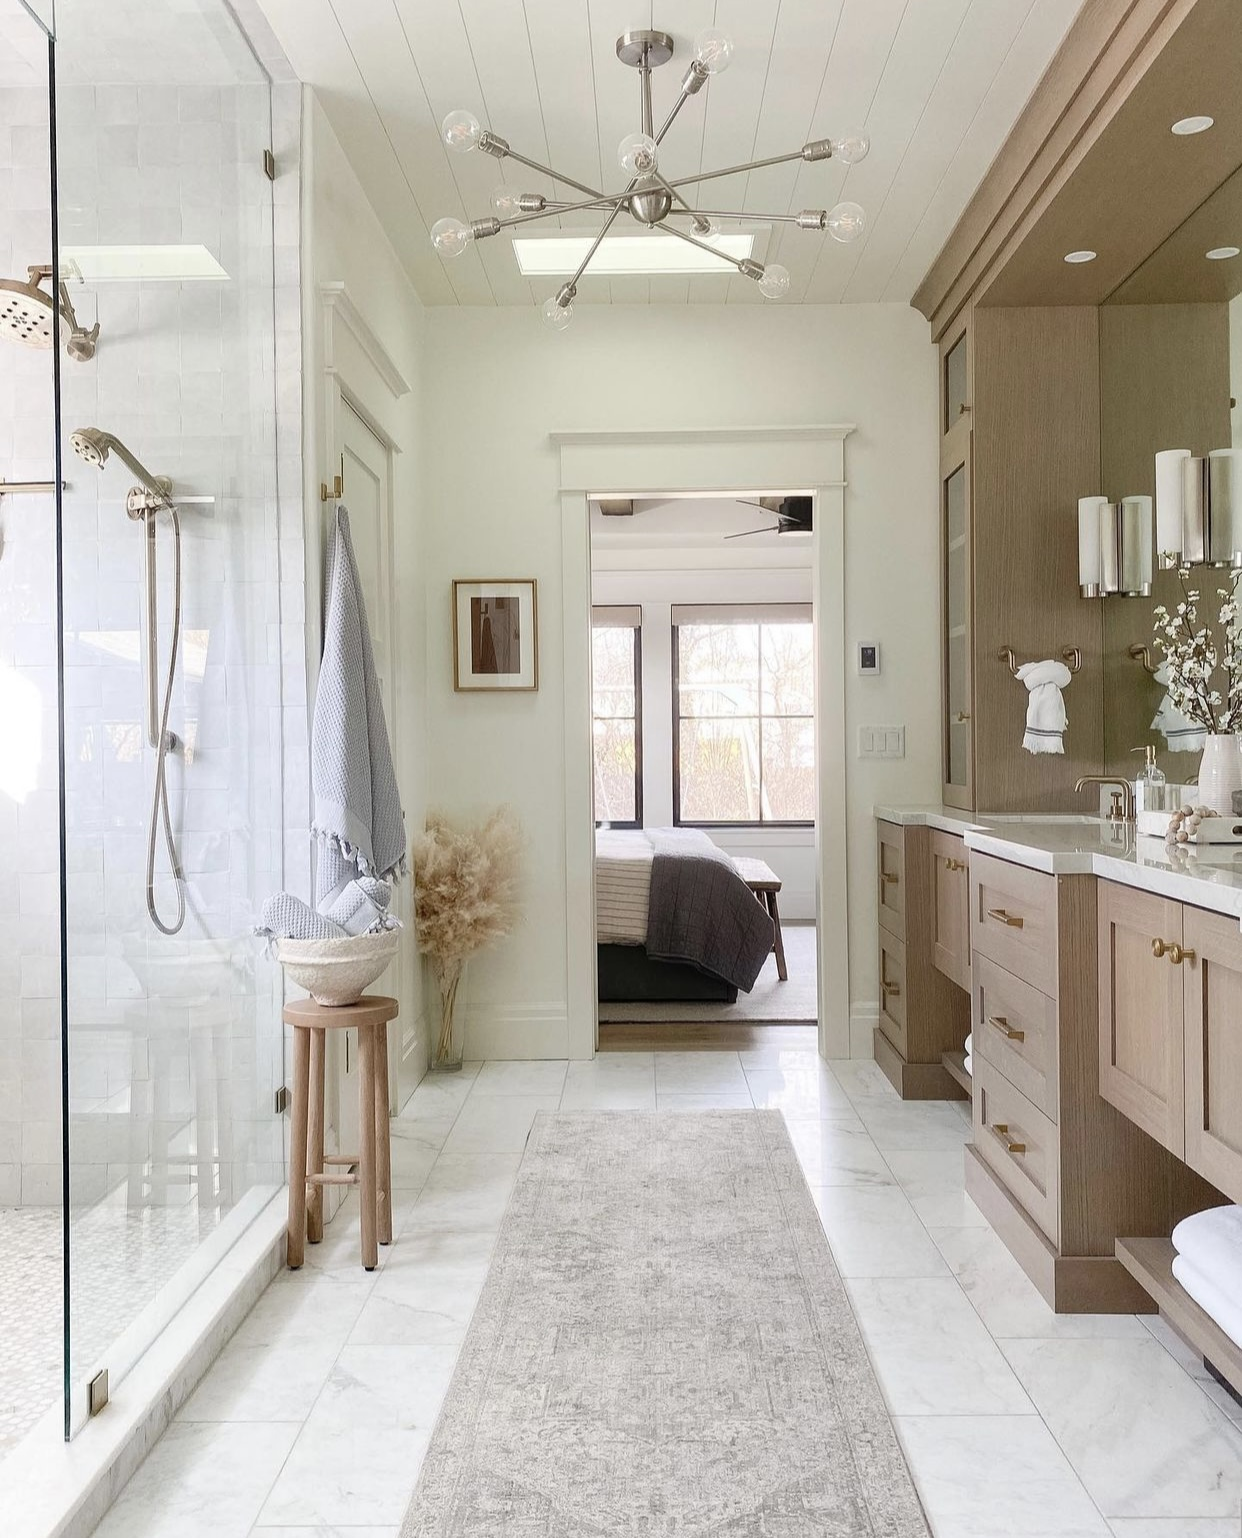 White marble bathroom in soft neutral colors with vintage inspired runner and light wood cabinetry.